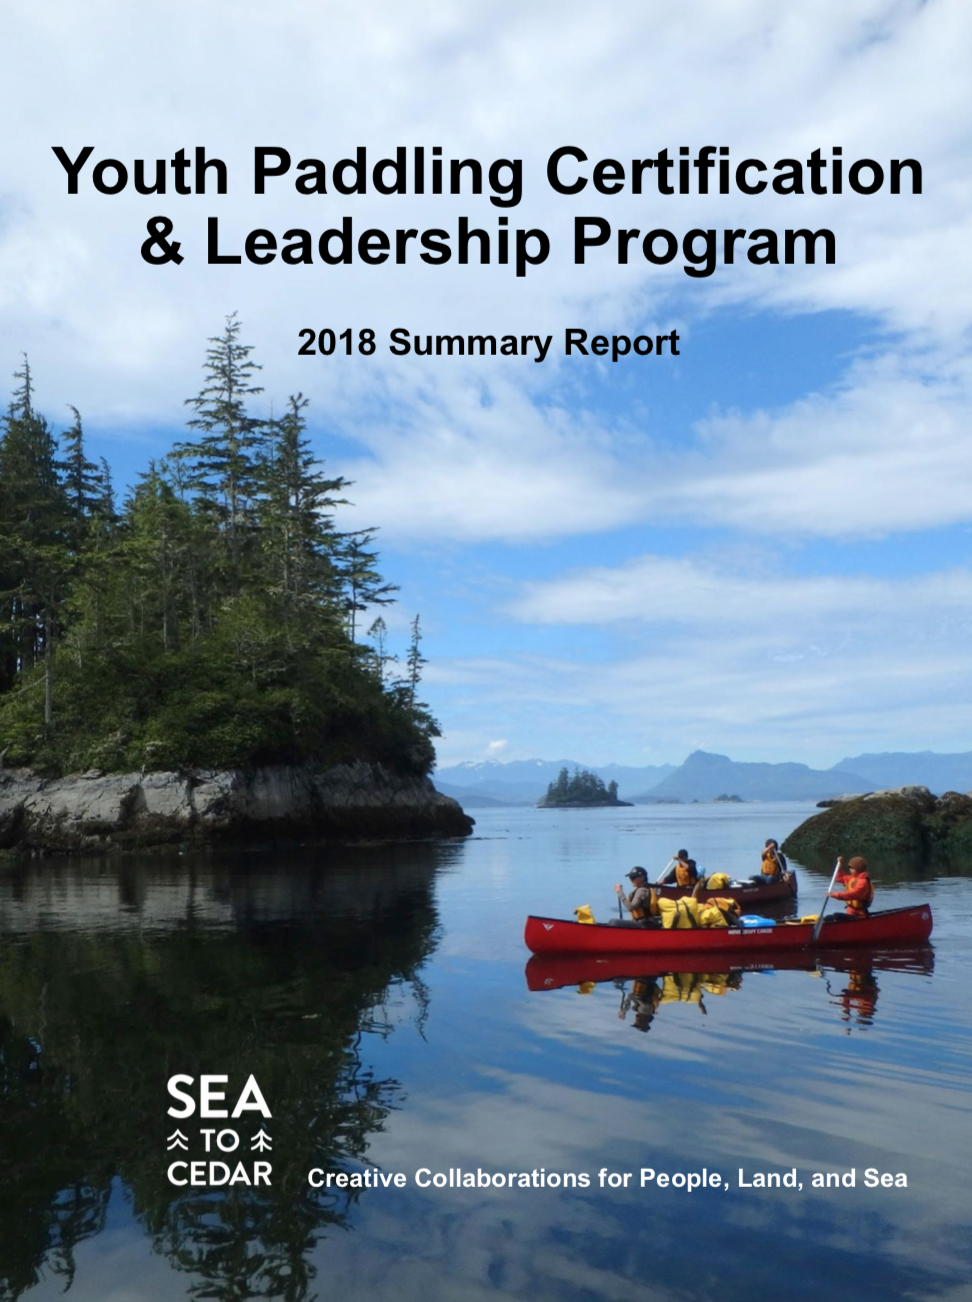 Youth Paddling Certification & Leadership Program — 2018 Summary Report